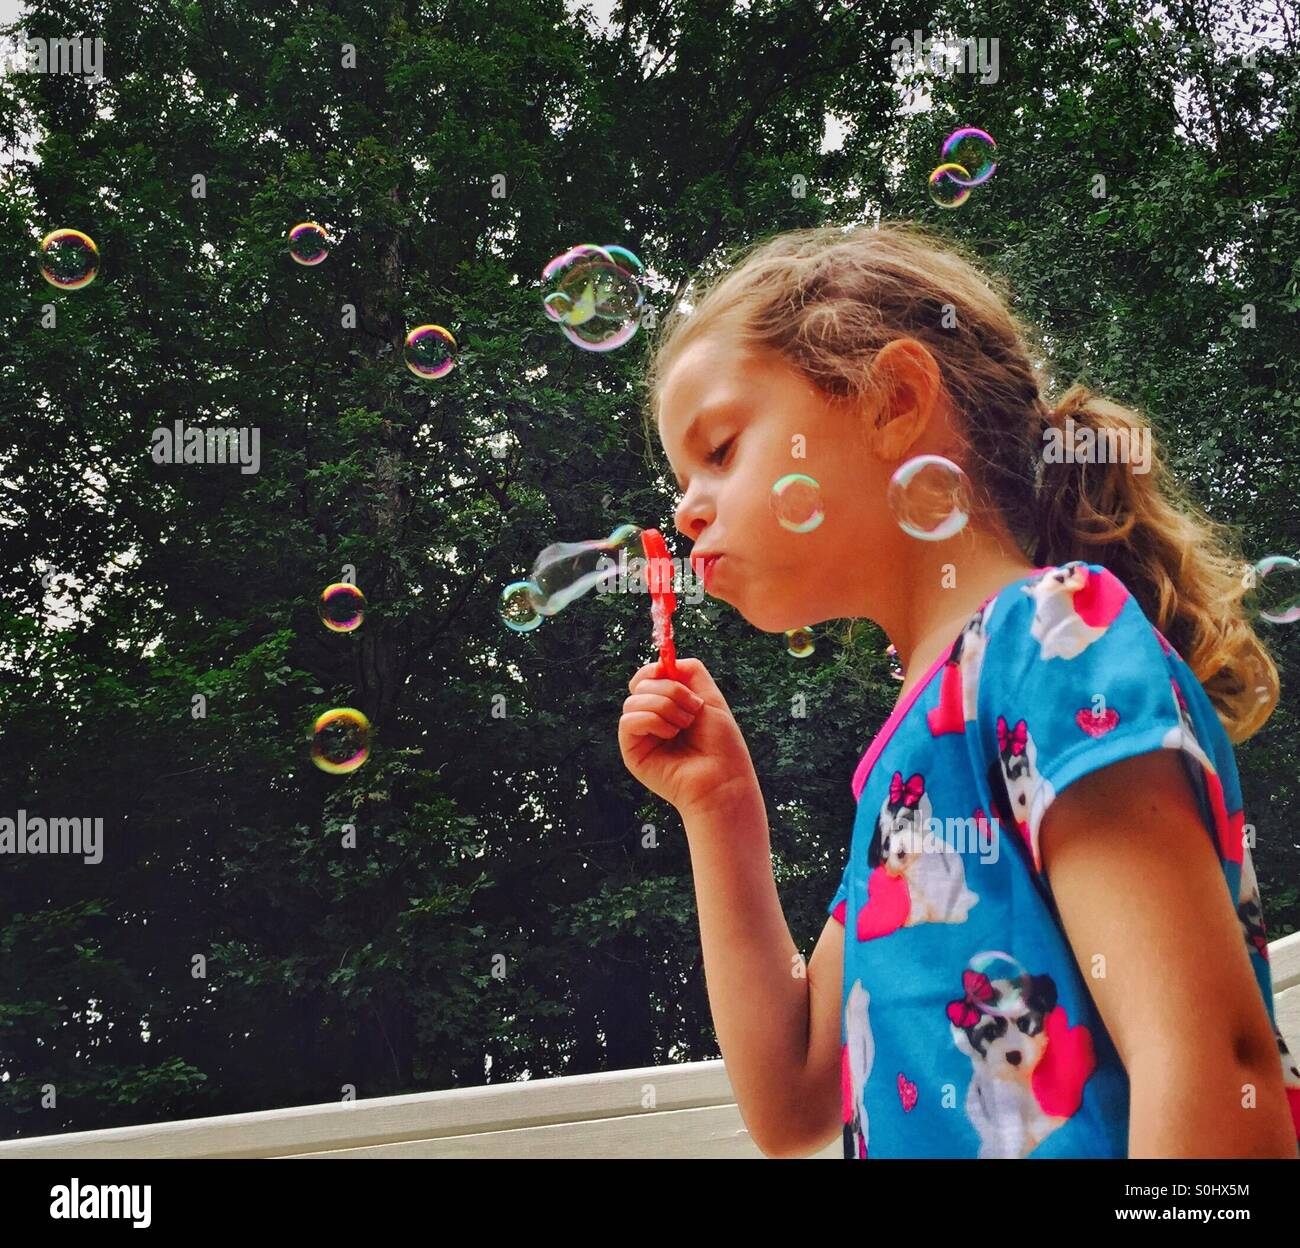 Little girl blowing bubbles - Stock Image